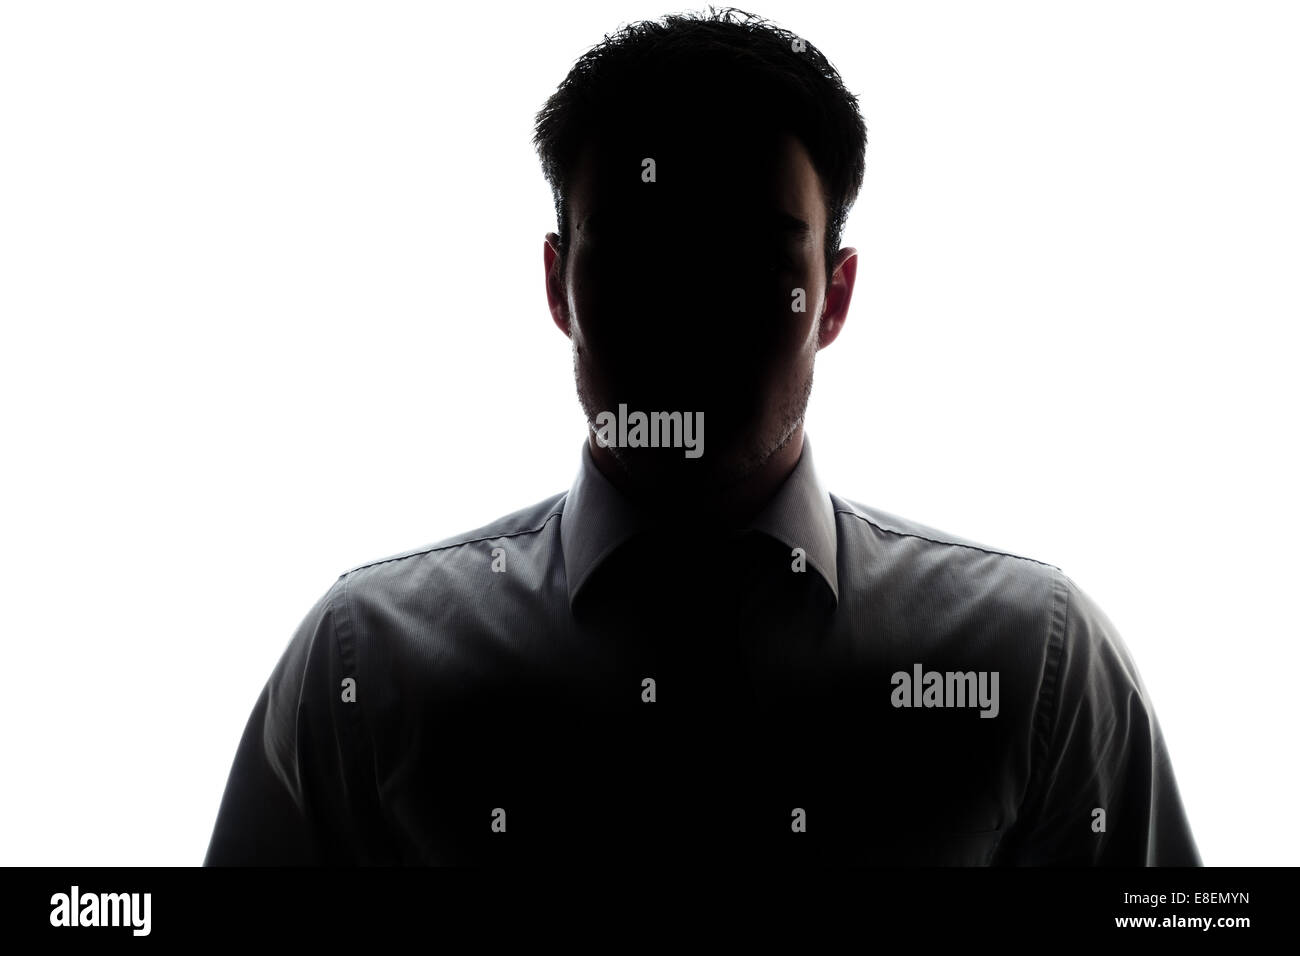 Businessman portrait silhouette and a misterious face - Stock Image